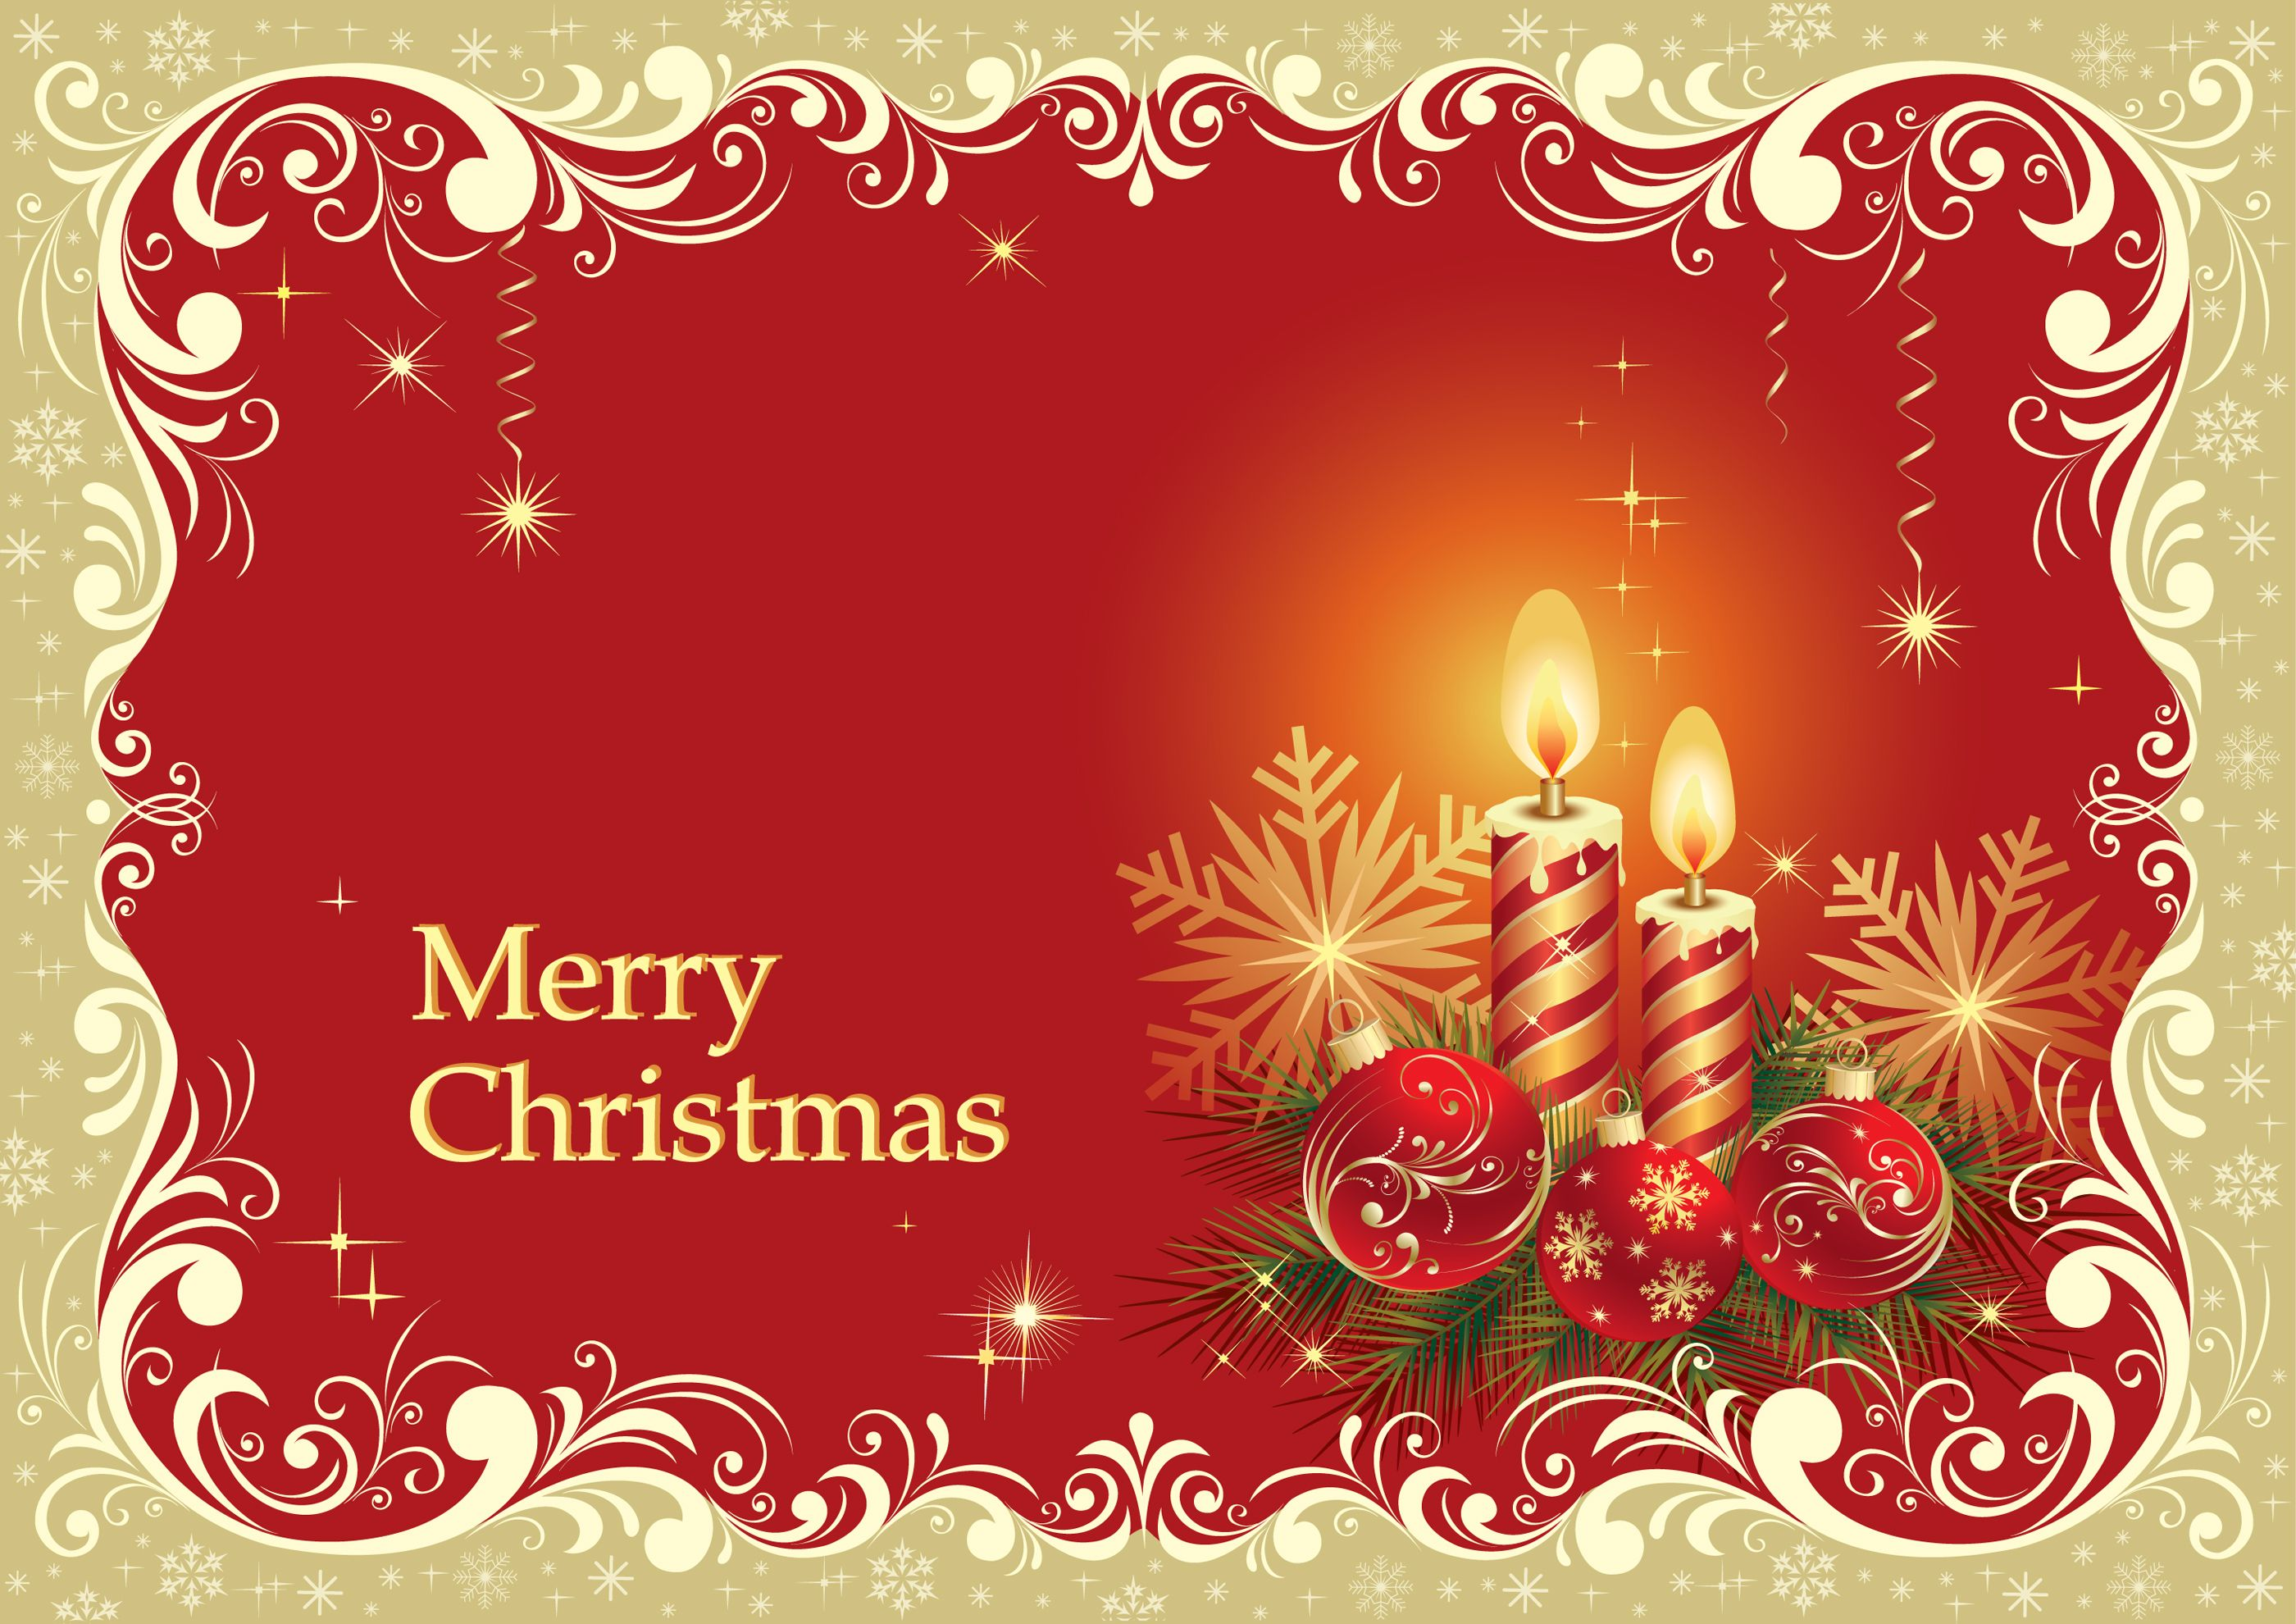 A Christmas Card Or Greeting Card Is A Great Way To Greet Someone On